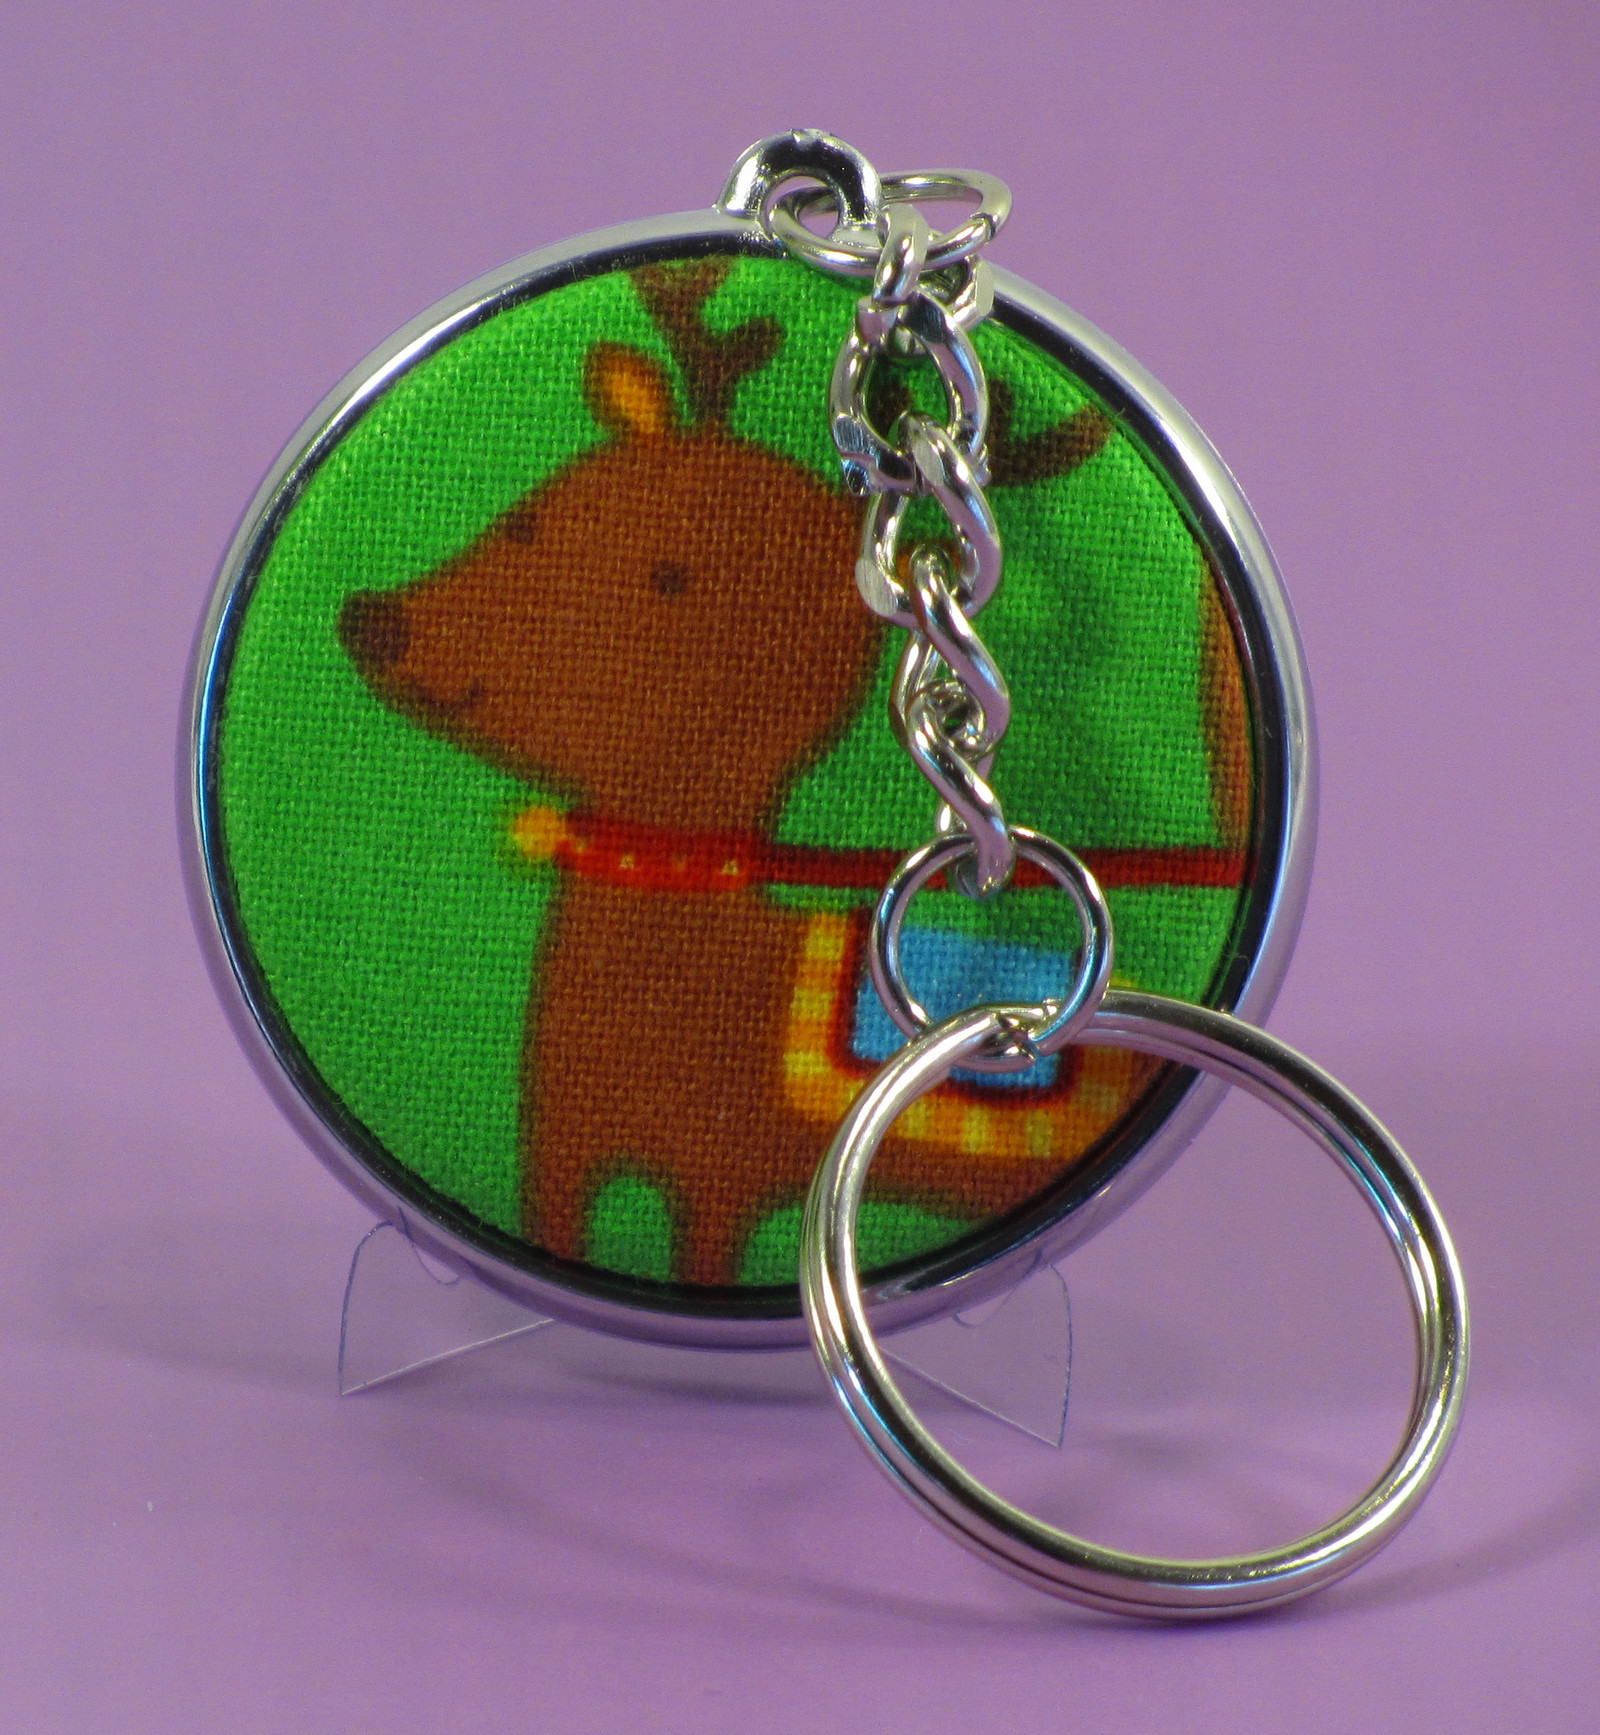 A beautiful electroplated key ring, with a 37 mm badge on each side